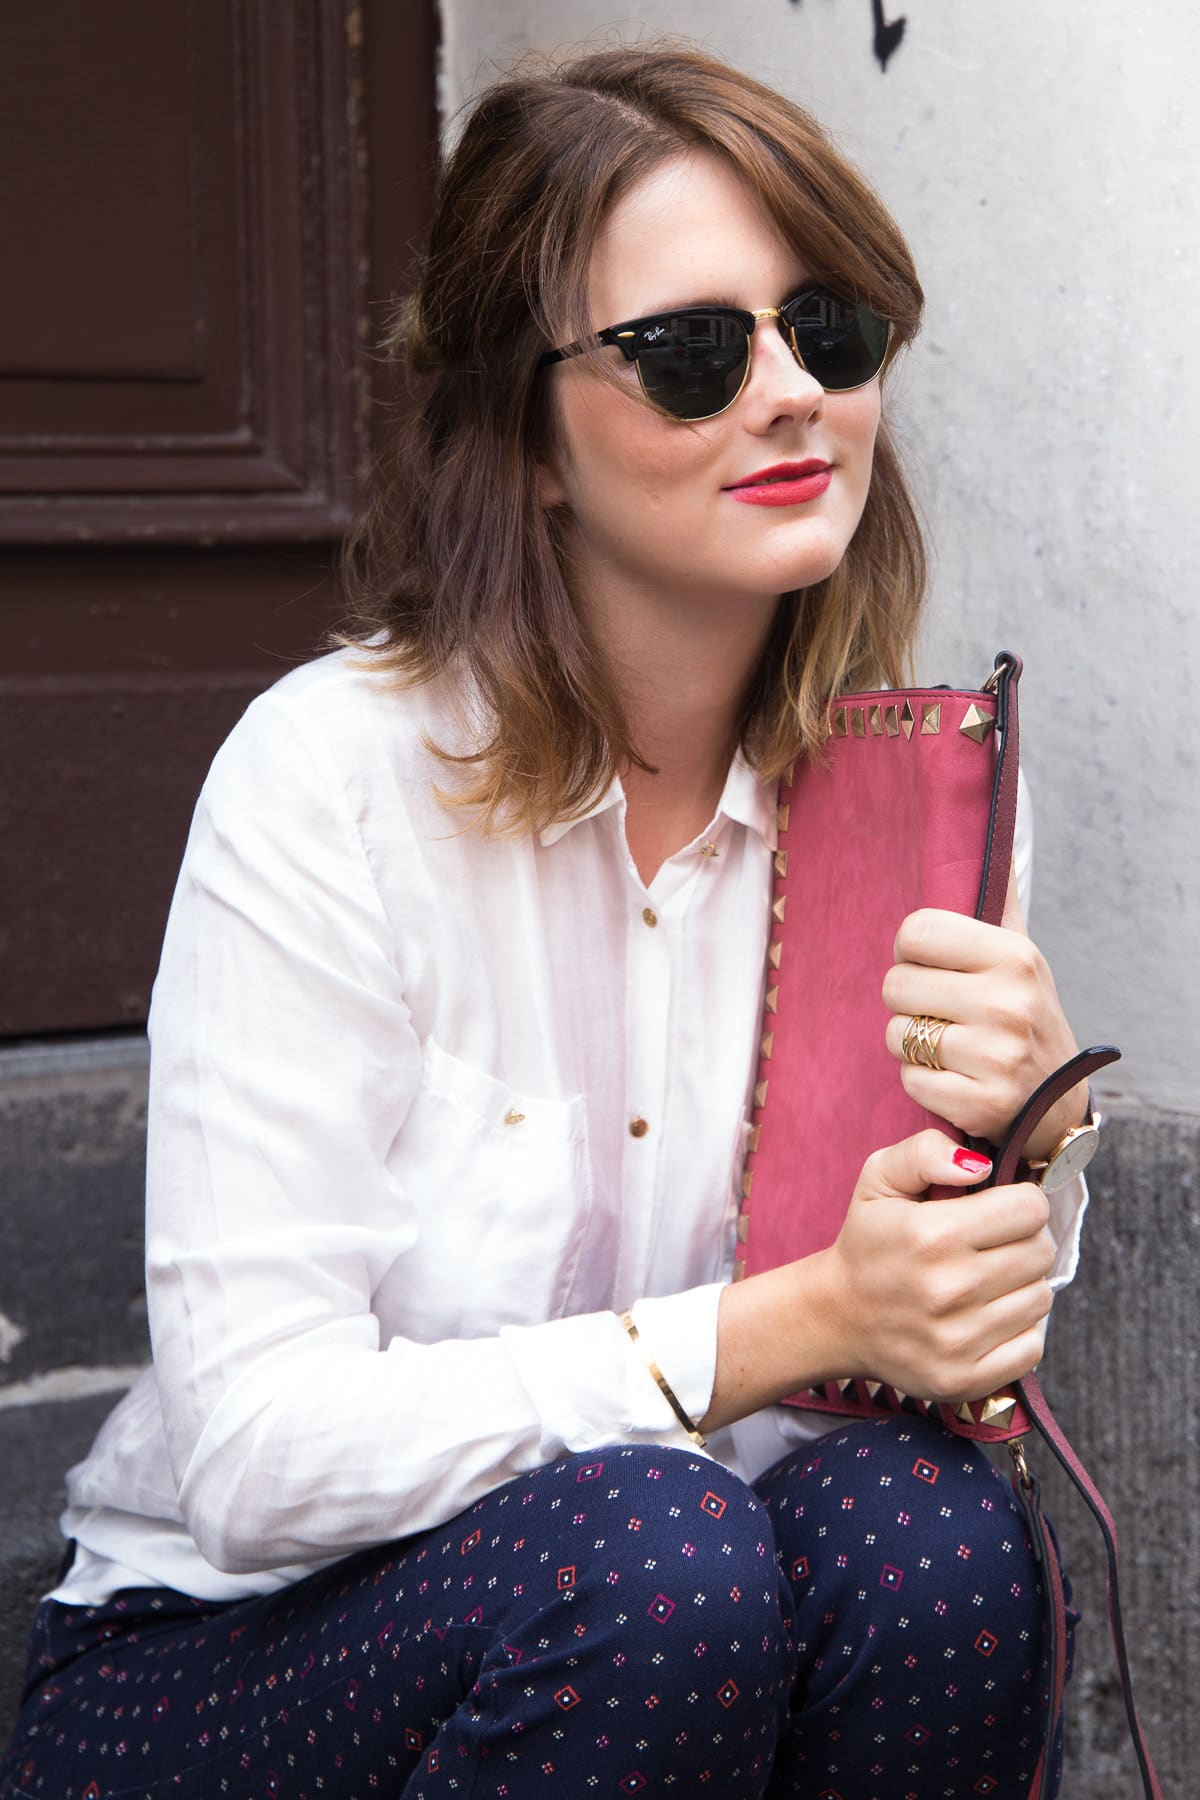 Outfit im Dandy-Style: Gemustete Hose & Brogues mit Plateau